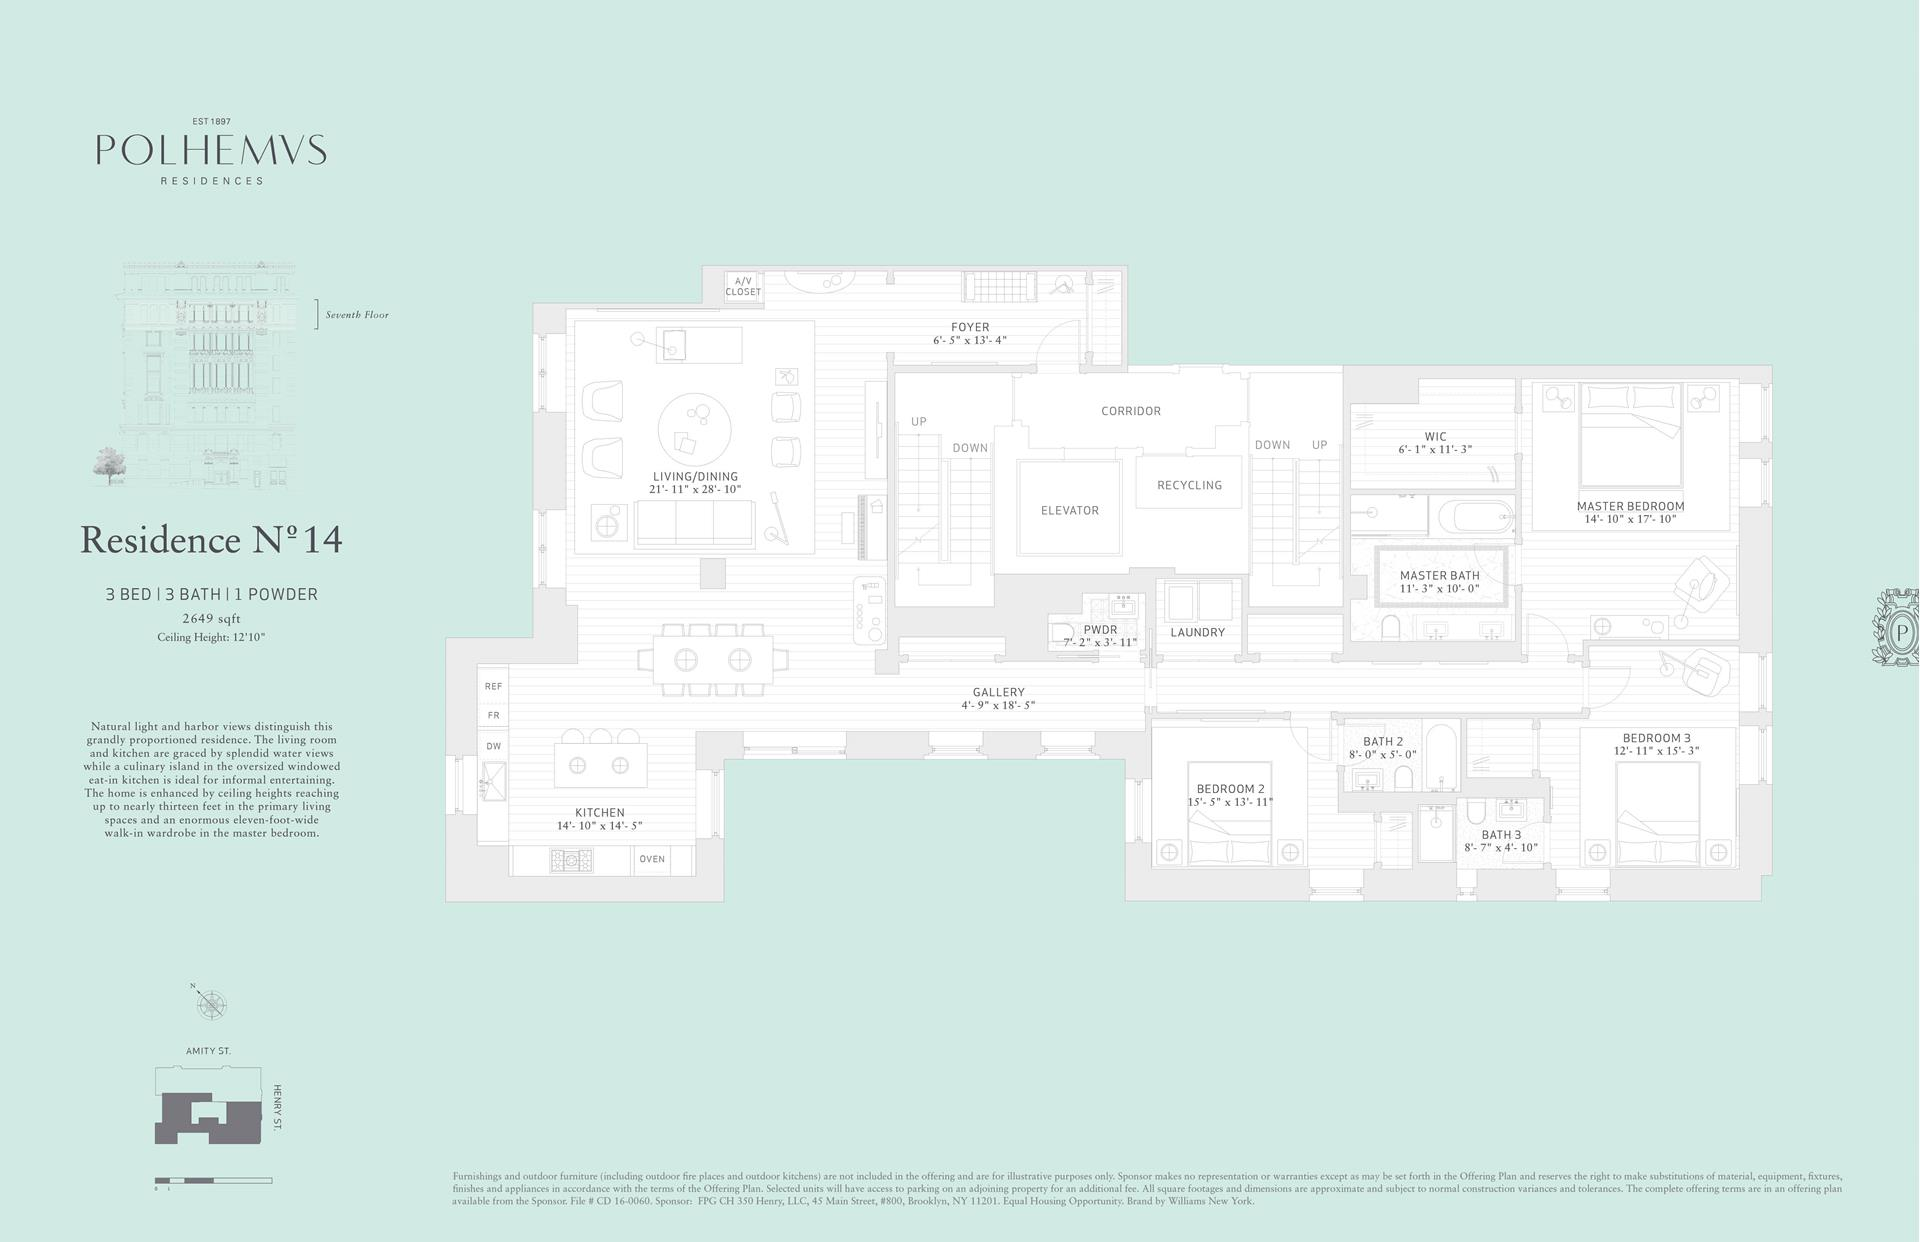 Floor plan of Polhemus, 100 Amity St, RES14 - Cobble Hill, New York